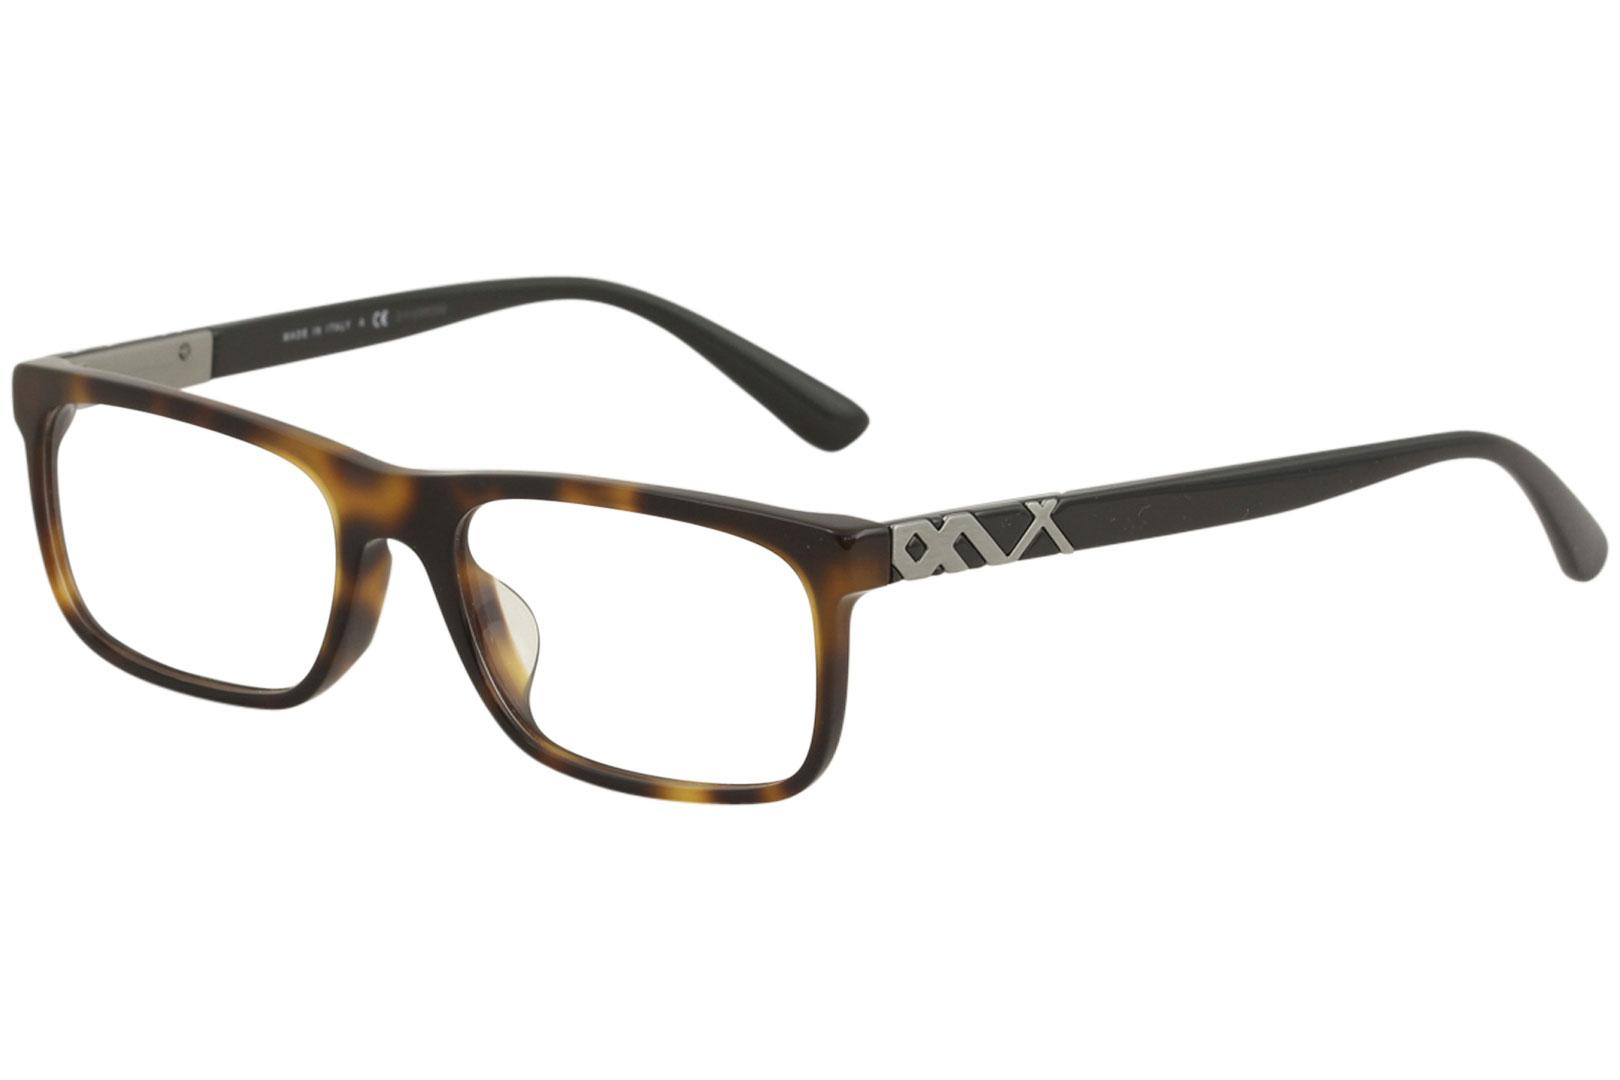 c52fa601ab36 Burberry Men's Eyeglasses BE2240 BE/2240 Full Rim Optical Frame